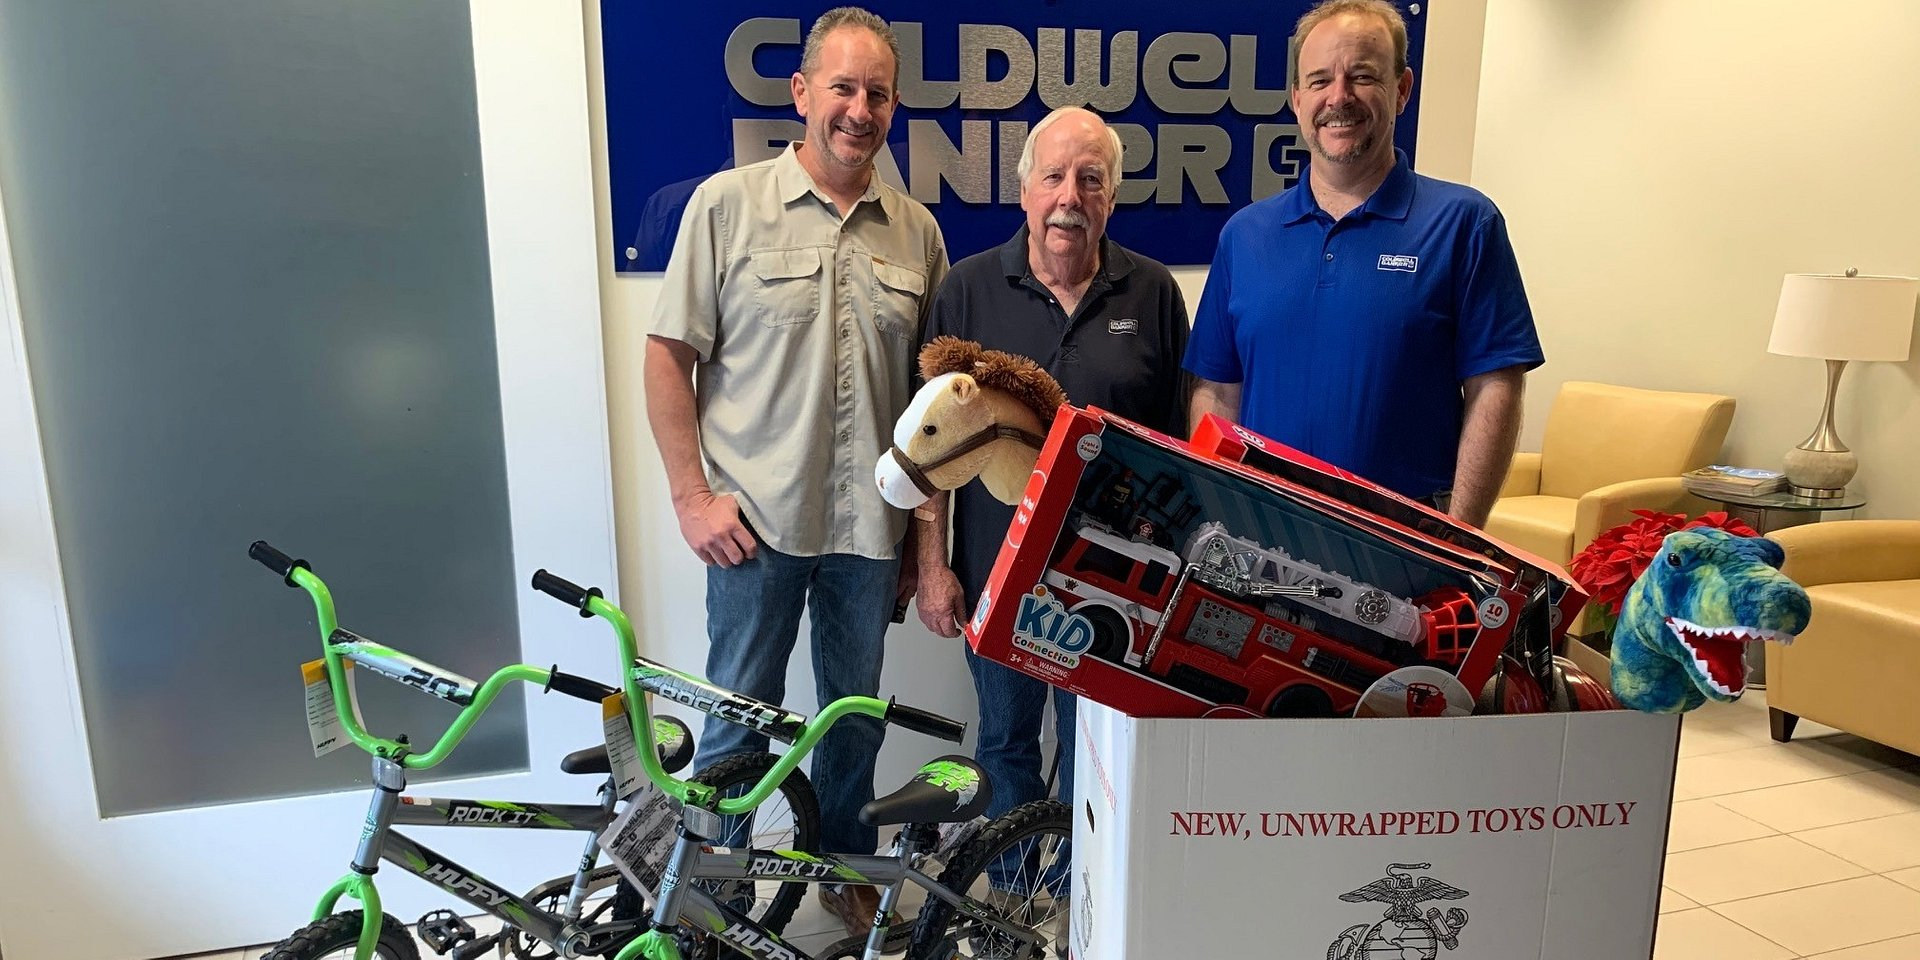 The Rancho Bernardo Office of Coldwell Banker Residential Brokerage Collected More Than 200 Toys for Toys for Tots